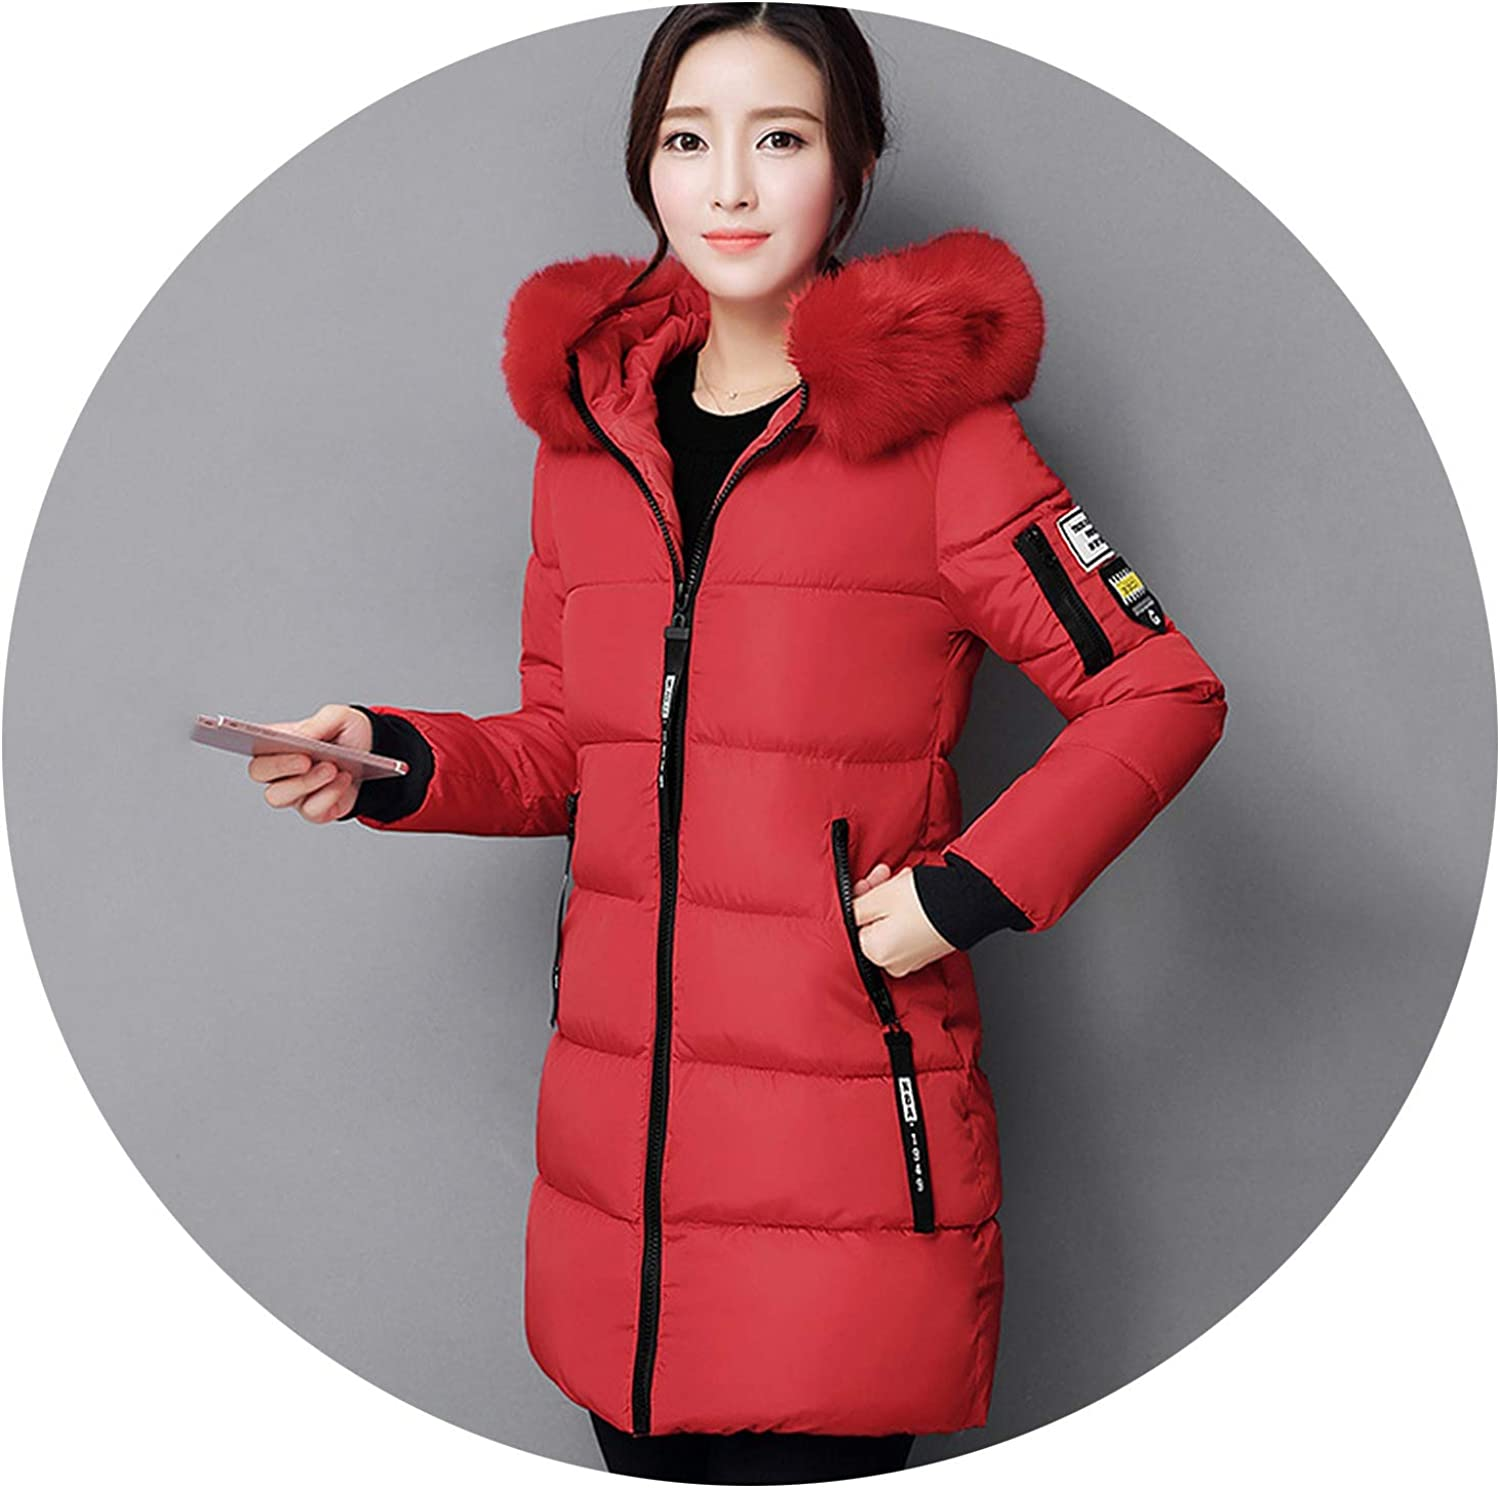 Prefect,Women Winter Jacket with F-ur Collar Warm Hooded Female Coat,RED,XL